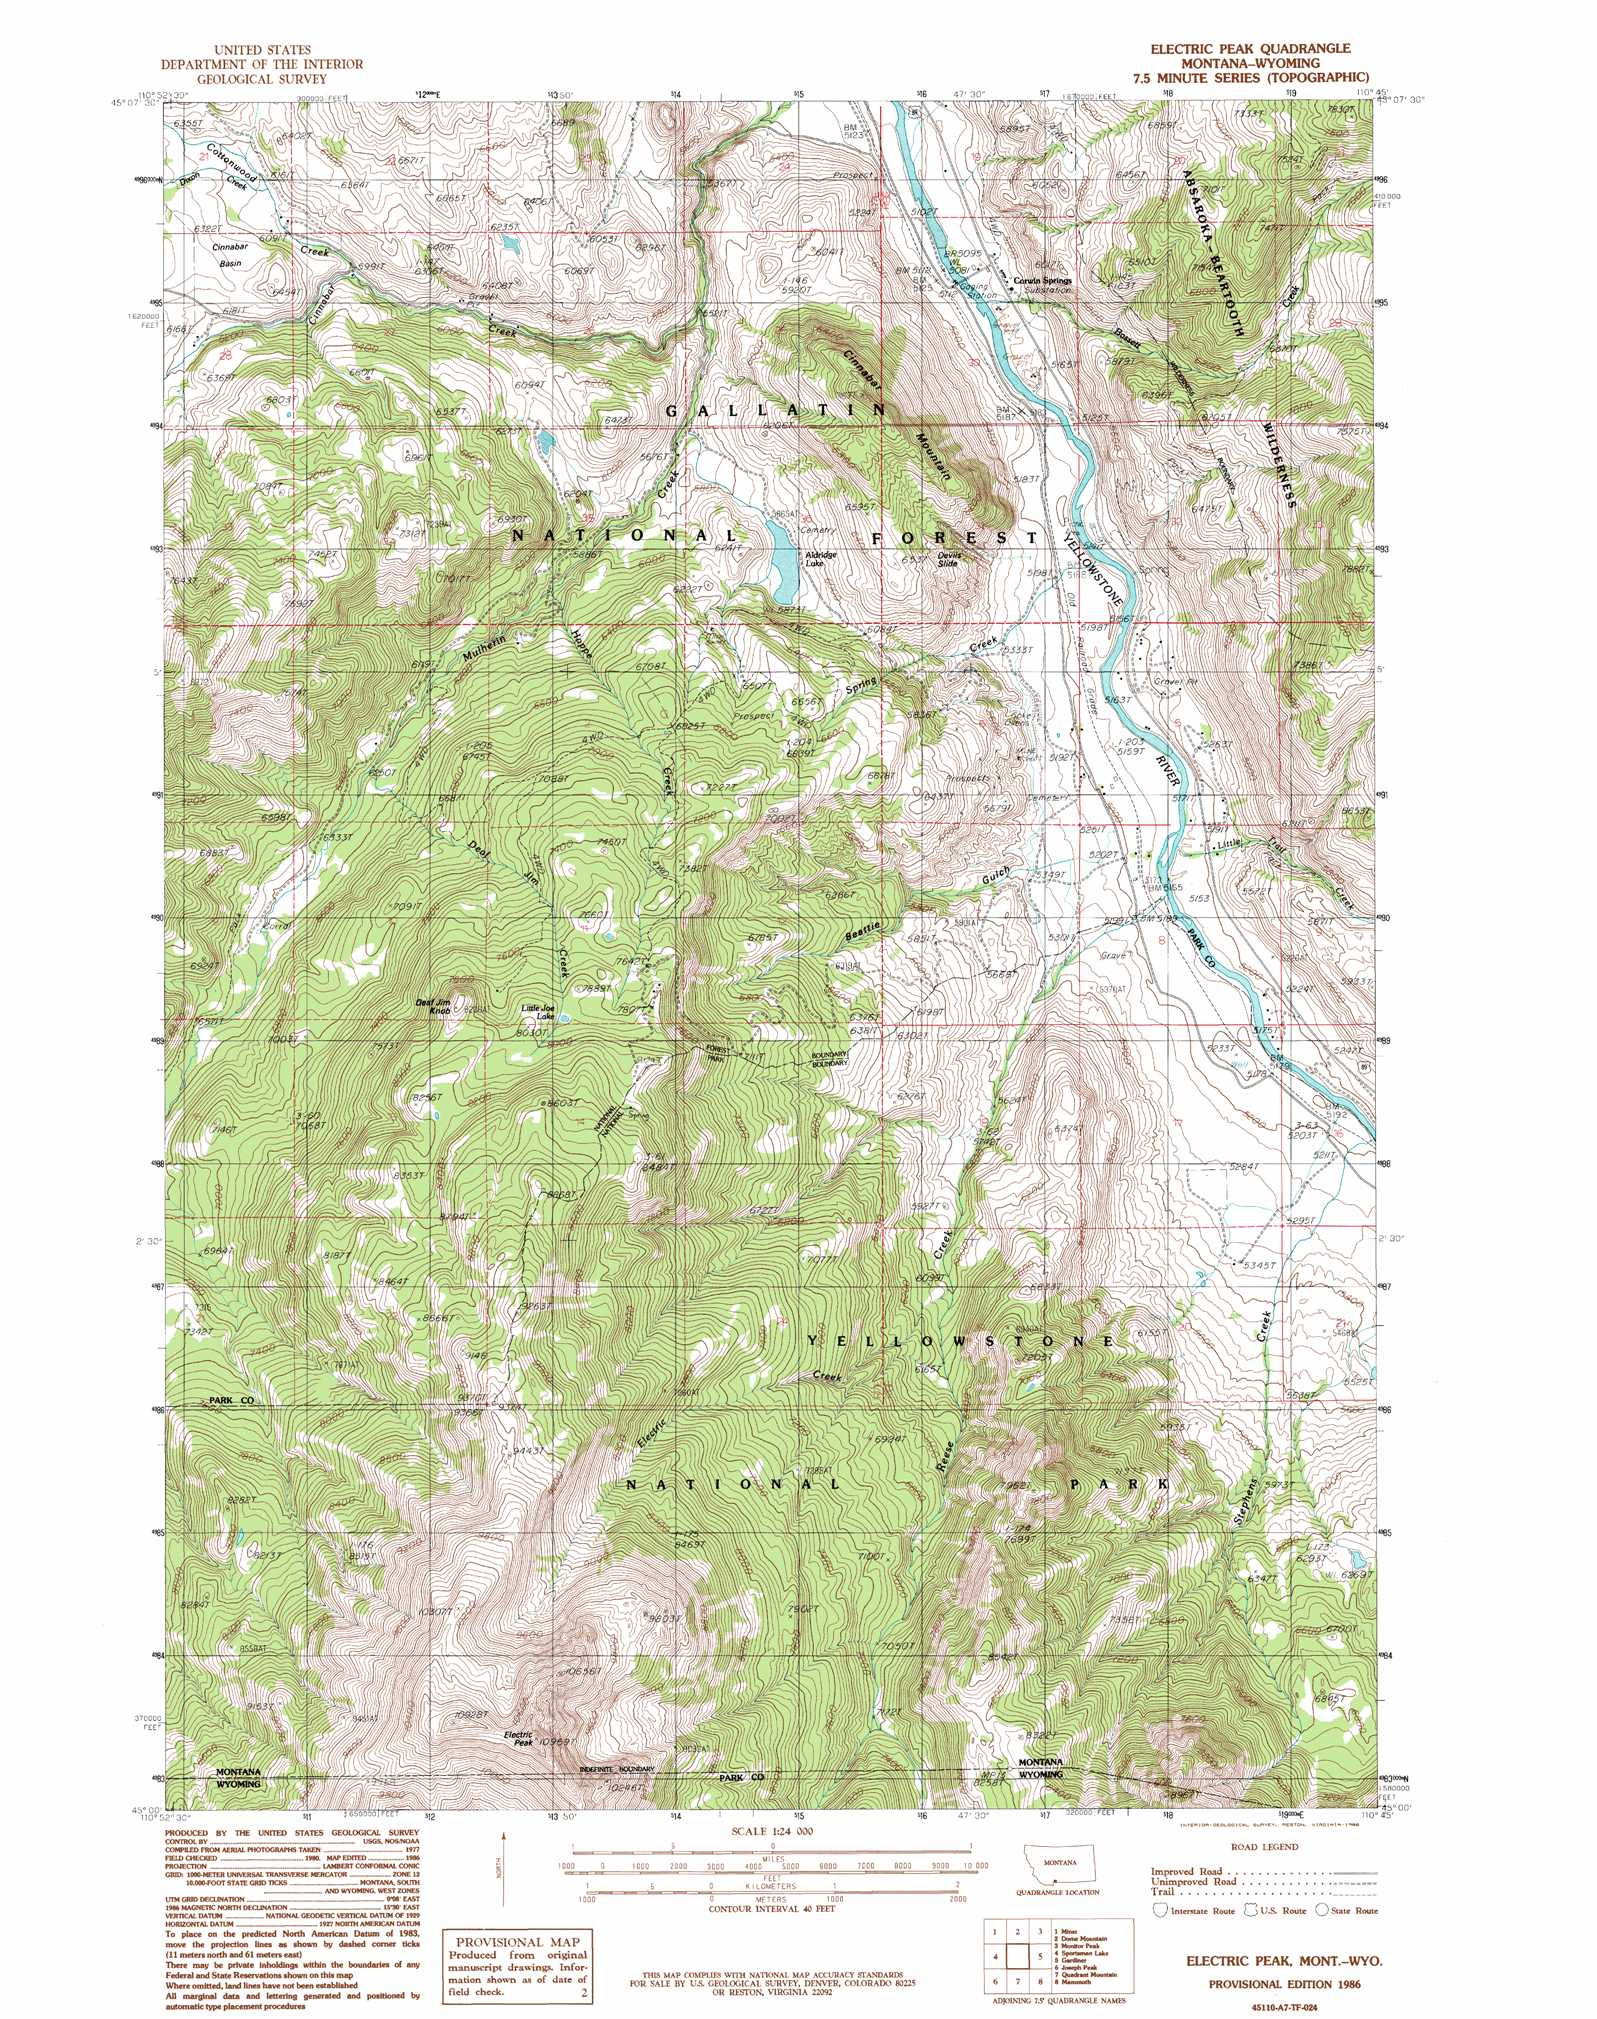 kentucky state parks map with 45110a7 on Where Is Salem moreover Large Detailed Roads And Highways Map Of Virginia And West Virginia With All Cities as well Idlewild Michigan Map likewise 11322 in addition Ohio.